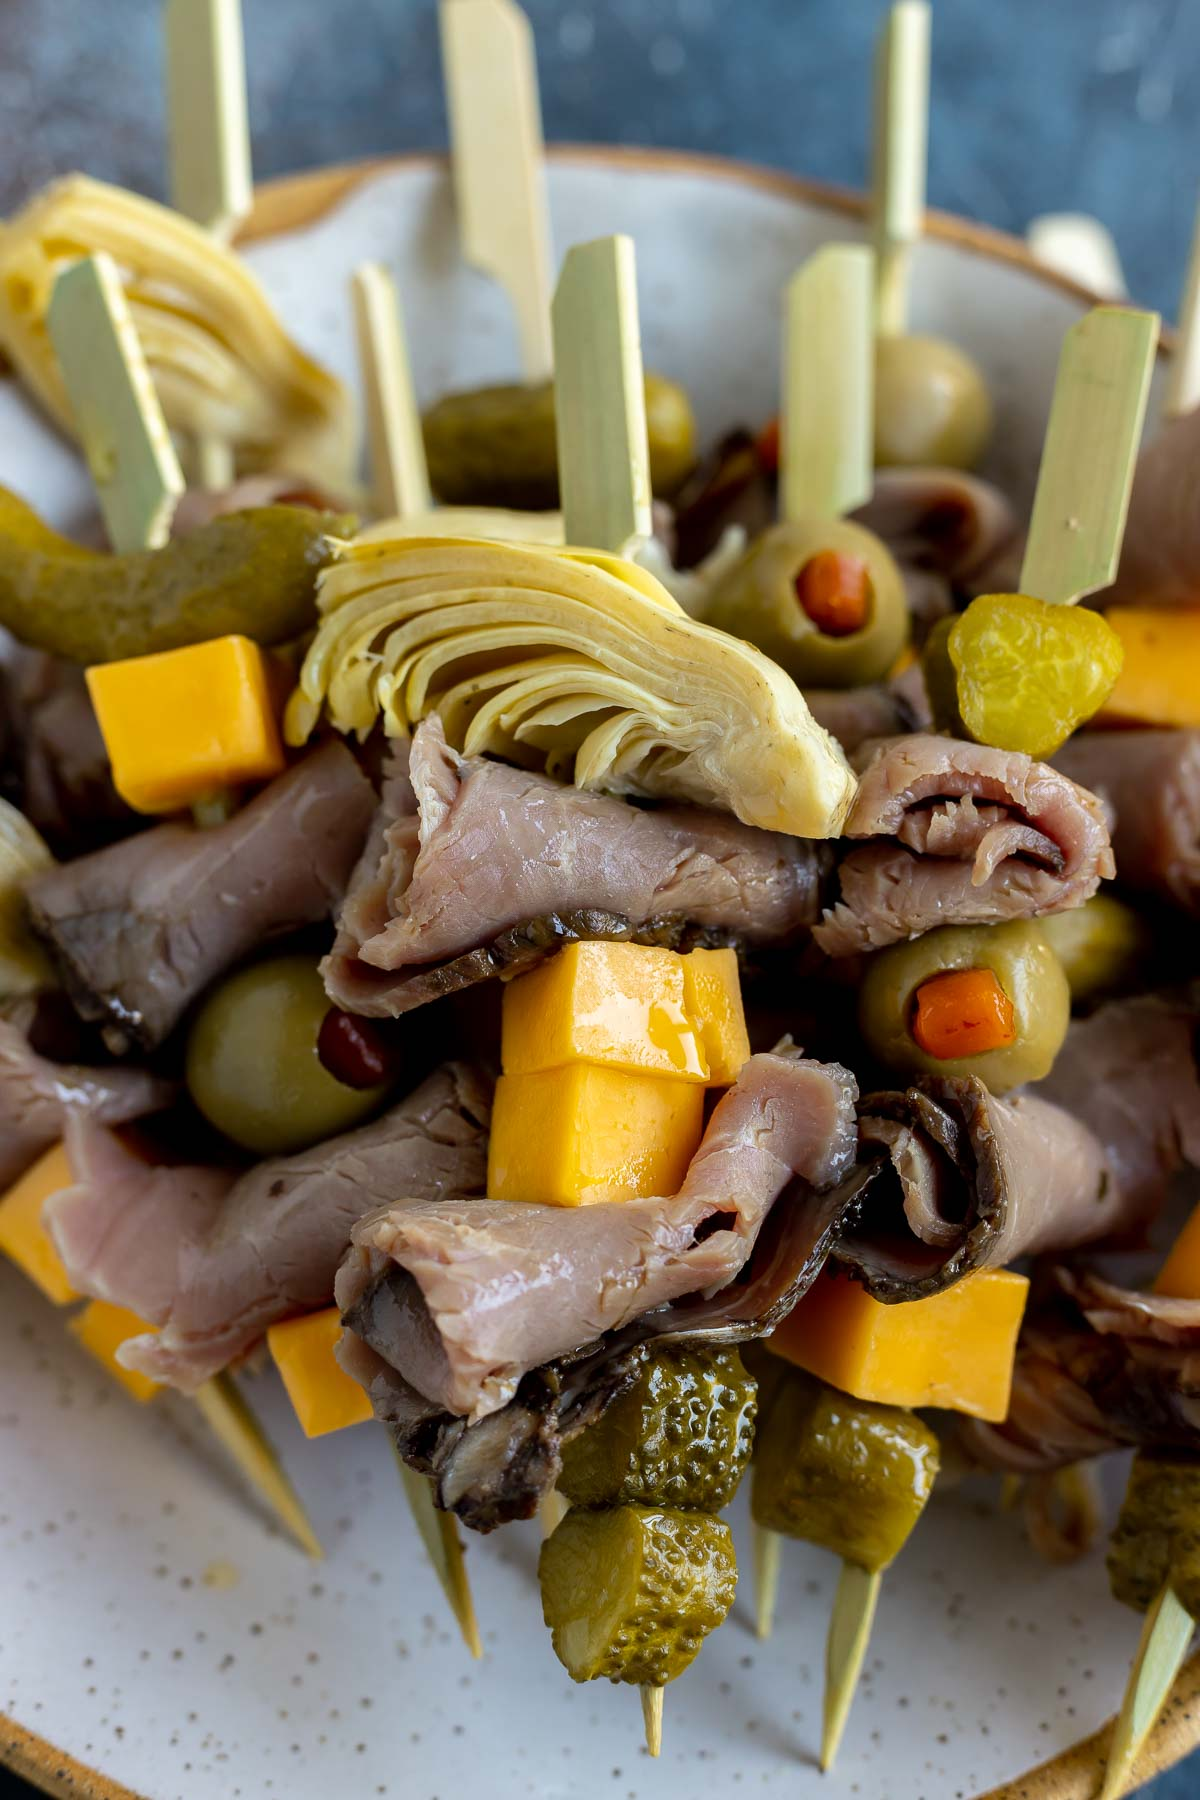 meat cheese olives and pickles on toothpick skewers